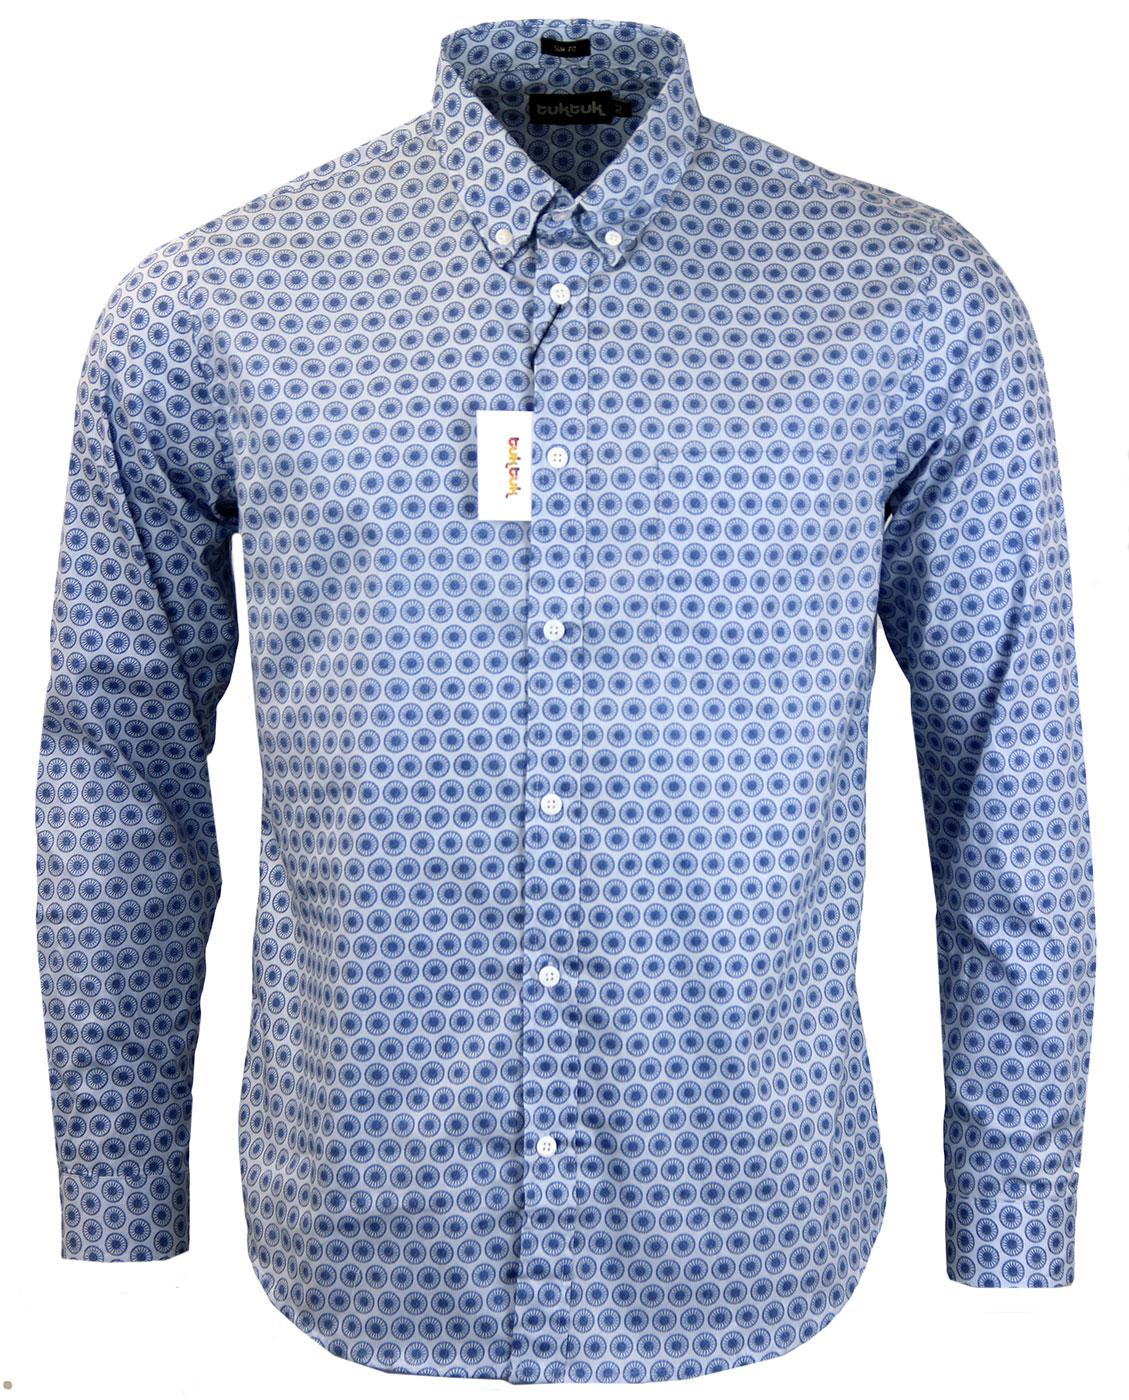 TUKTUK Big Wheel 60s Mod Op Art Button Down Shirt